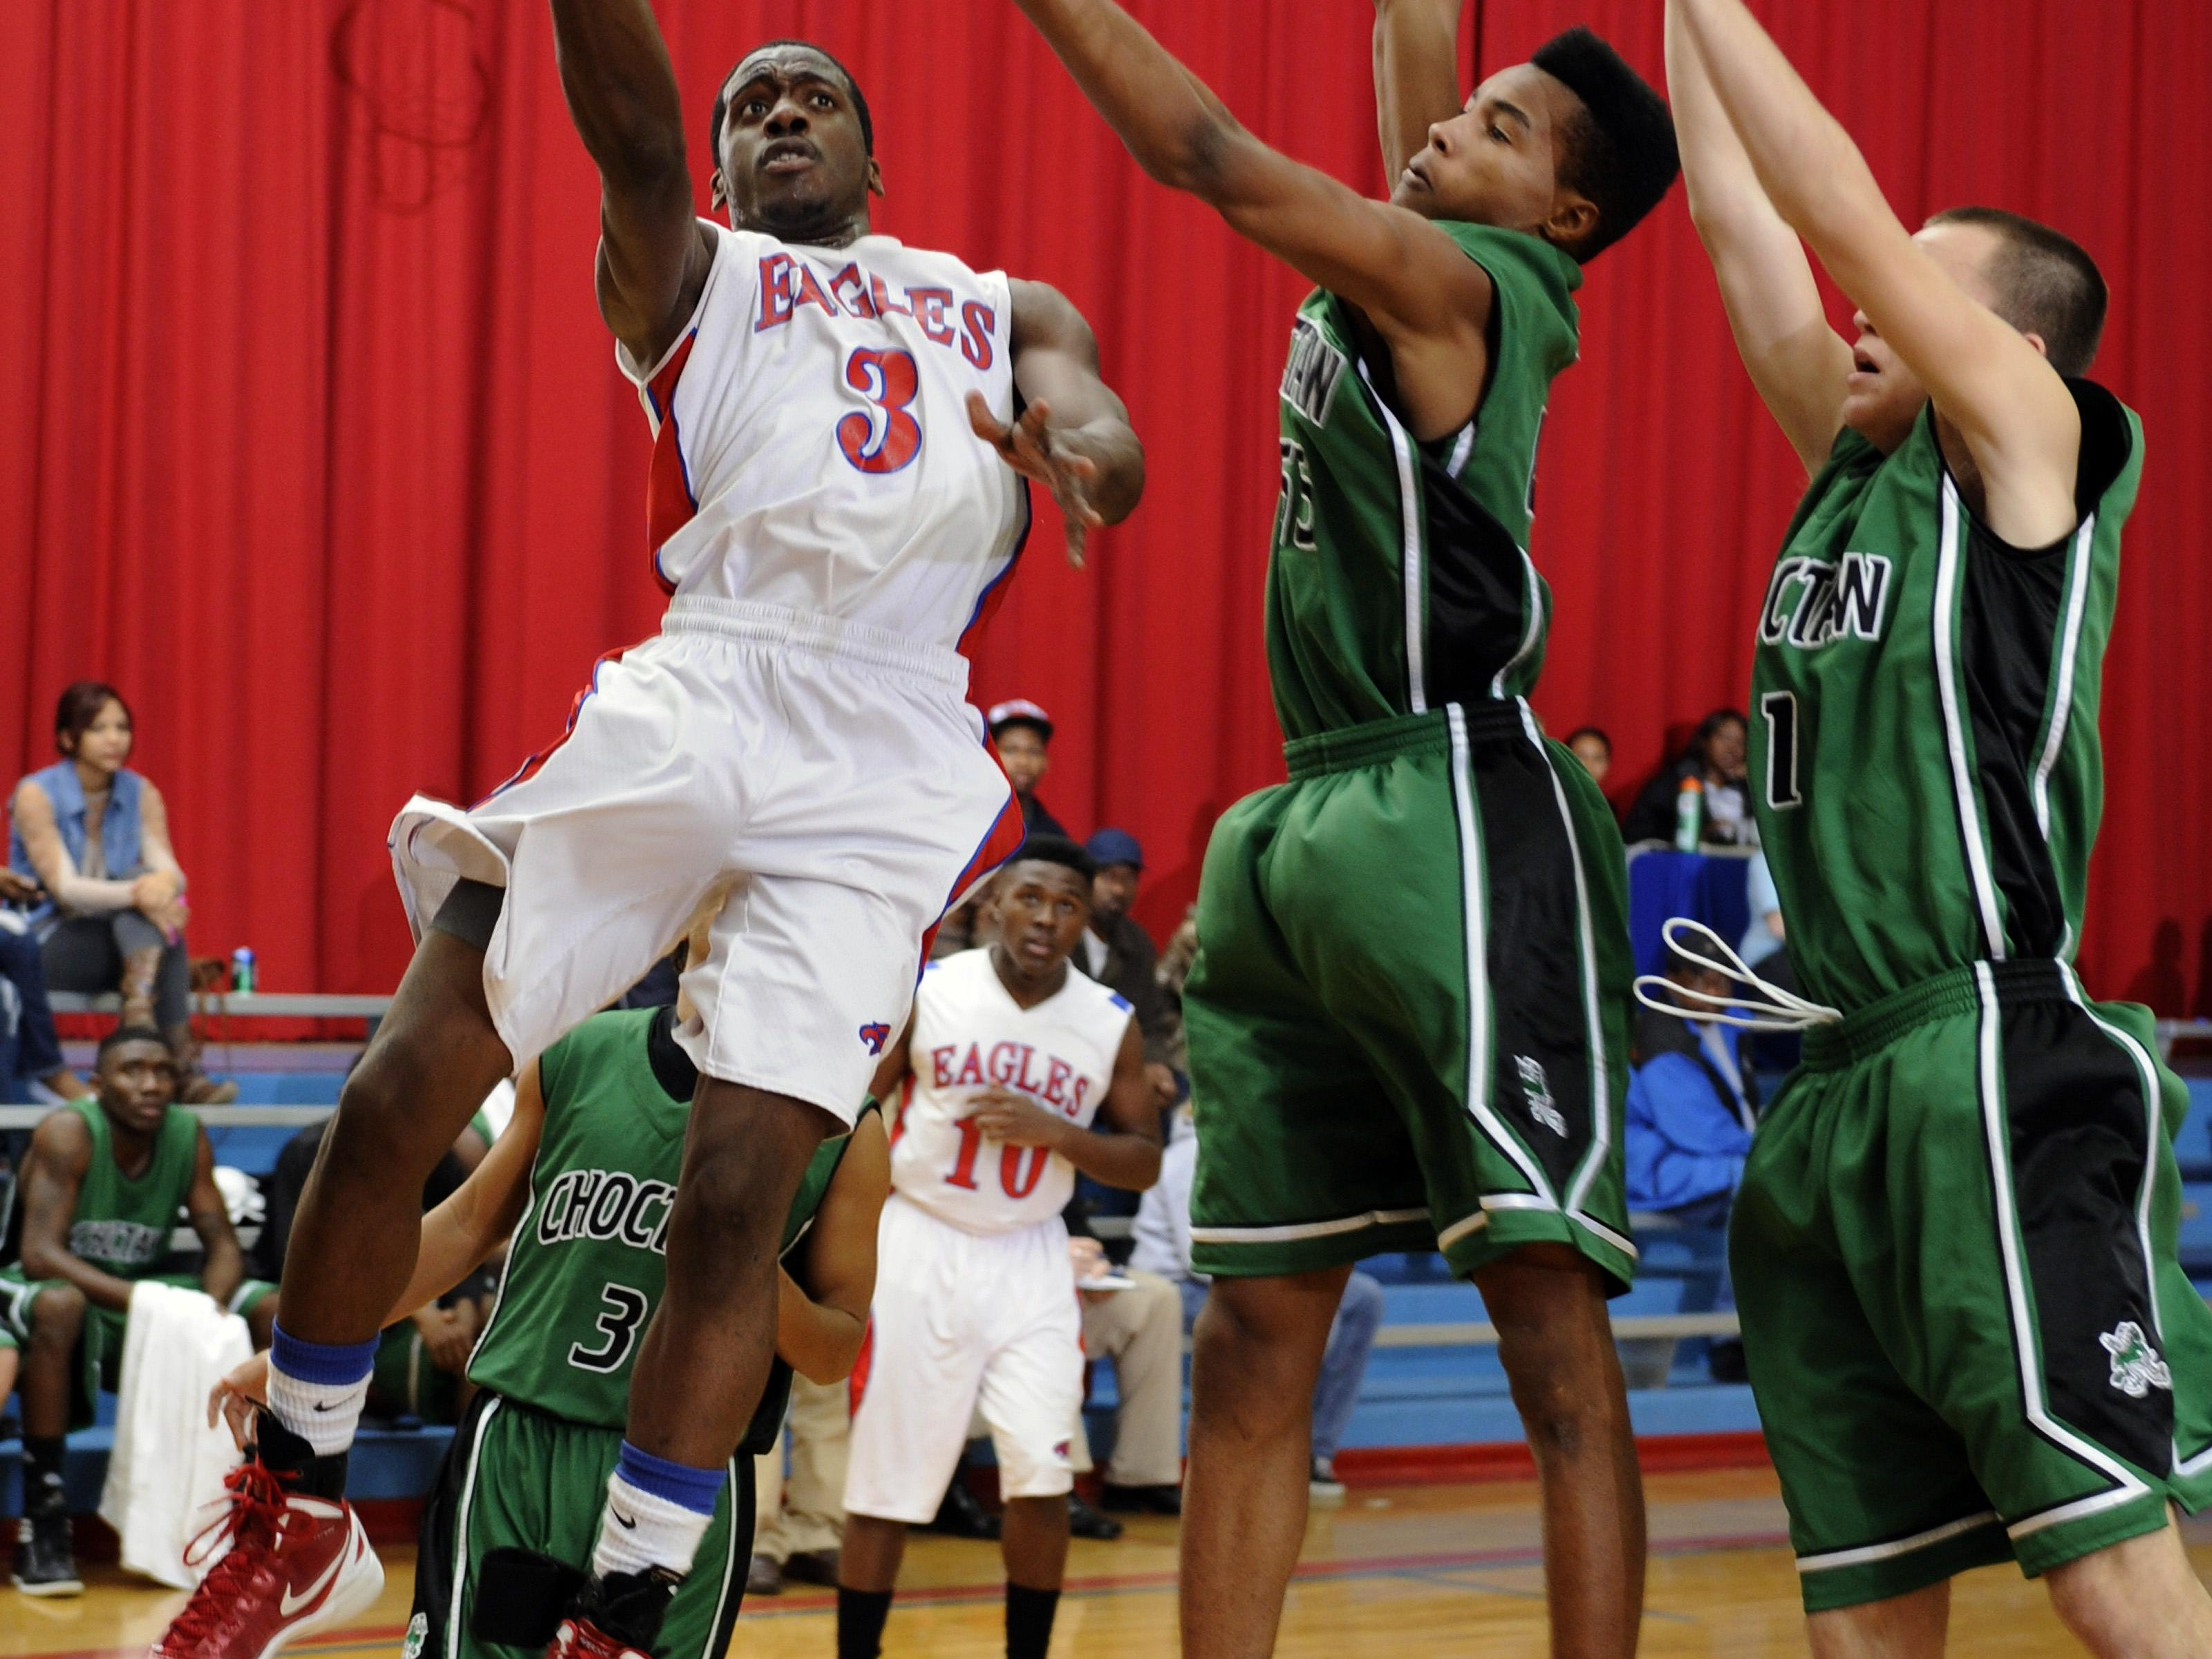 Former Pine Forest standout Shaquille Purifoy goes up for a layup against Choctaw. Both Purifoy and Jaques Hill were promising players whose life was cut short.